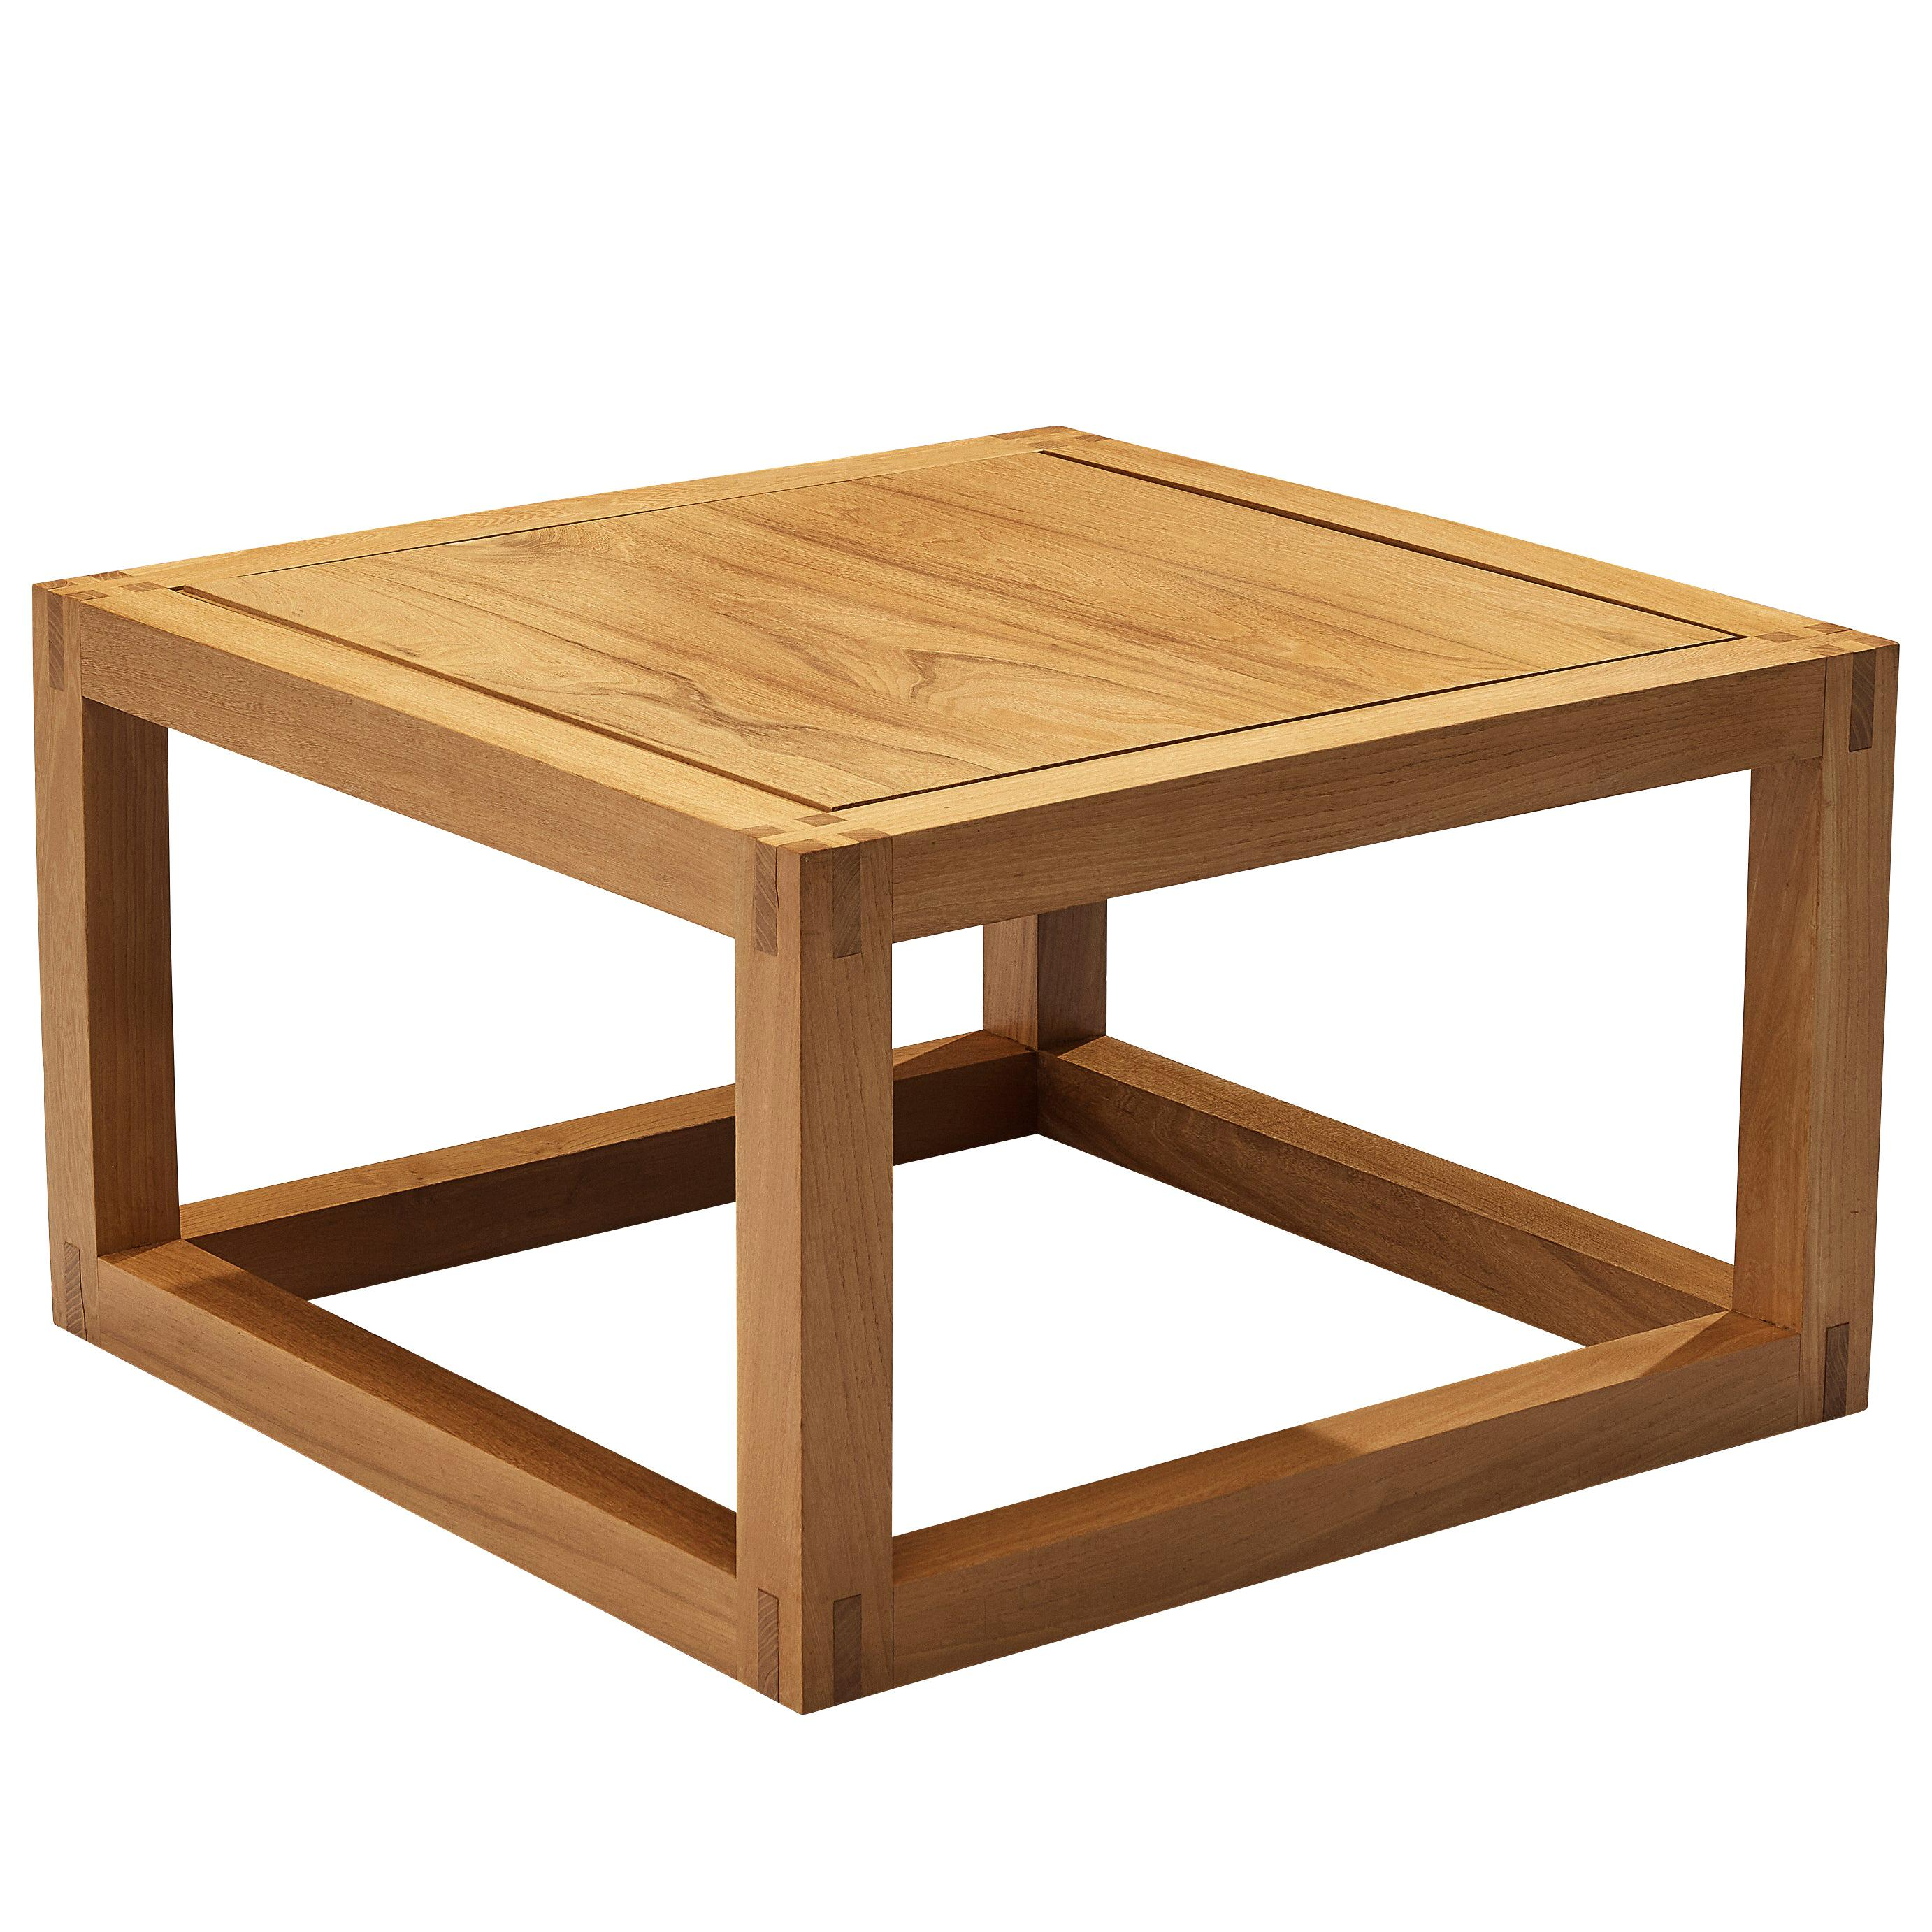 Maison Regain Cubic Coffee Table in Solid Elm